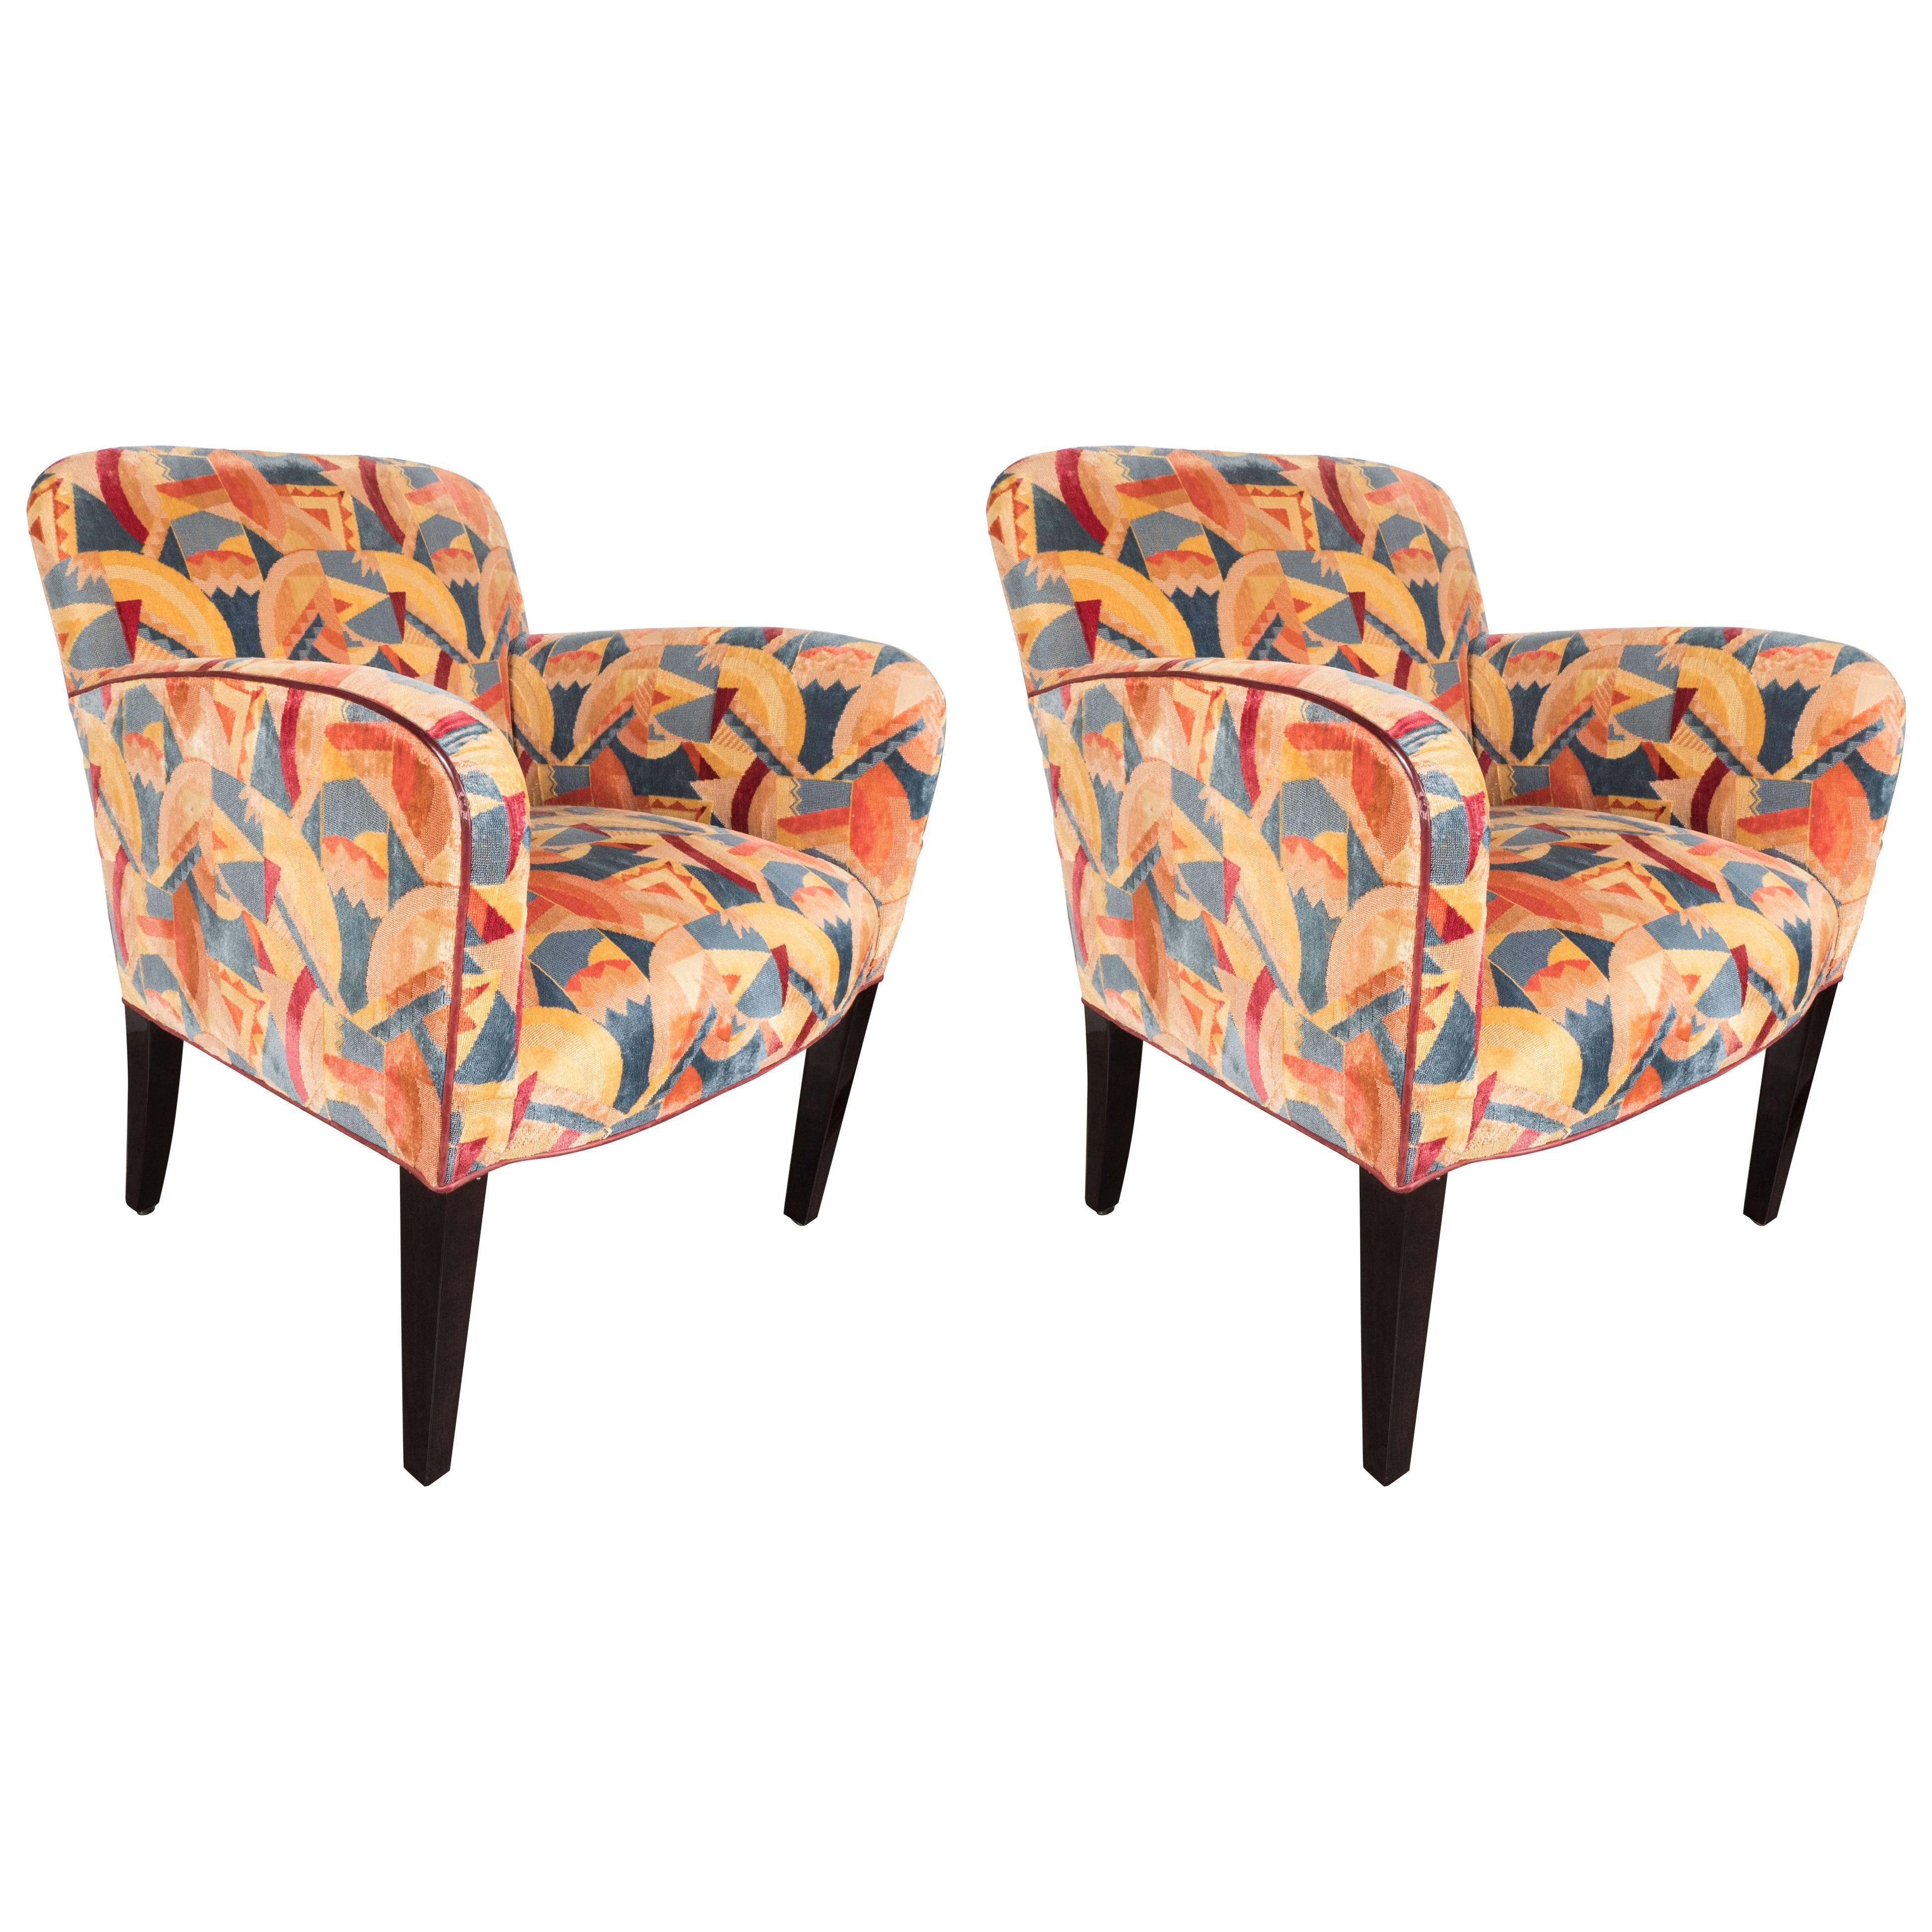 By Clarence House. Pair Of Donghia Armchairs In Vibrant Cubist Fabric By  Pierre Frey